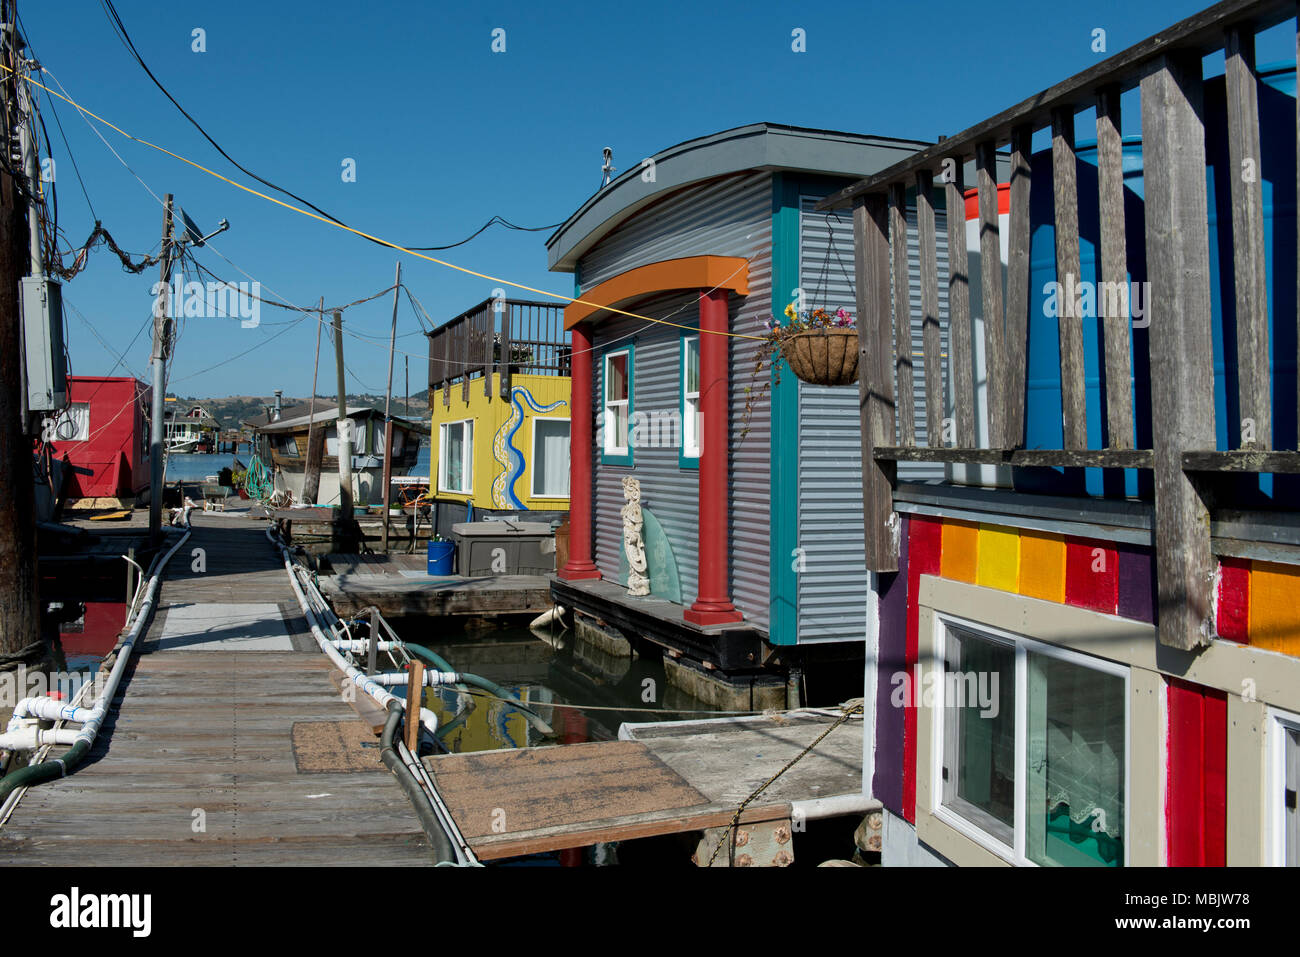 500 Floating Homes in the Bay - Stock Image